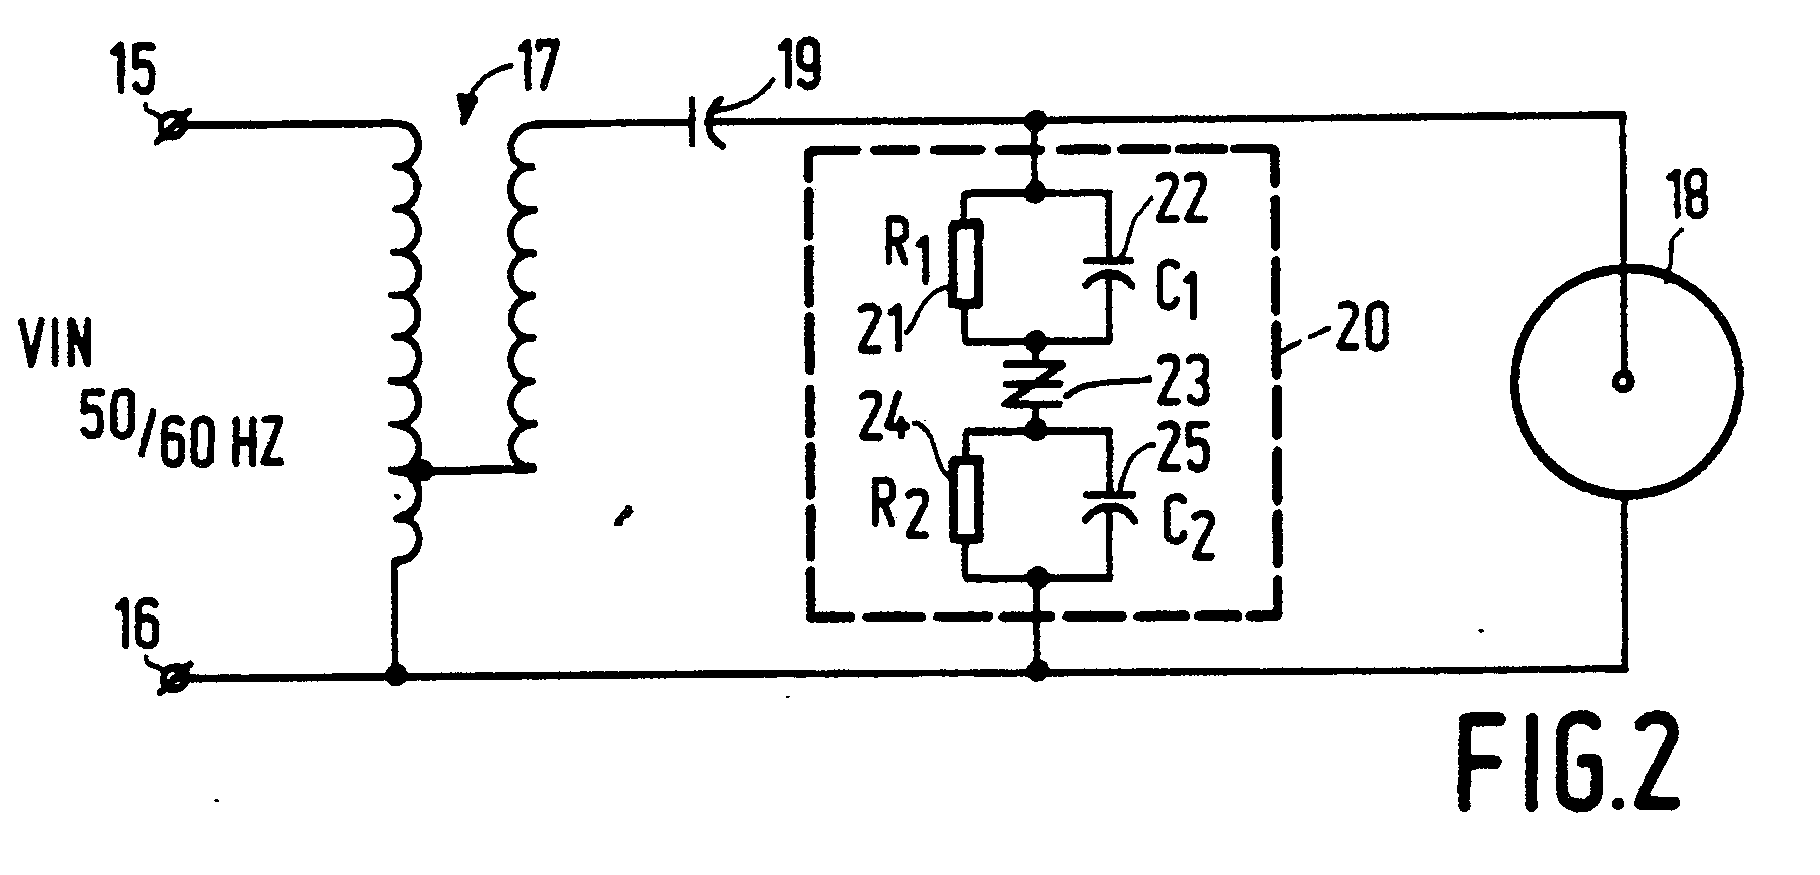 Two Lead Igniter For Hid Lamps Patent 0383385 Ballast Schematic Moreover Led Wiring Diagram Multiple Lights Together Of The First And Second Networks A High Frequency Voltage Pulsatory Open Circuit That Provides More Reliable Ignition Lamp